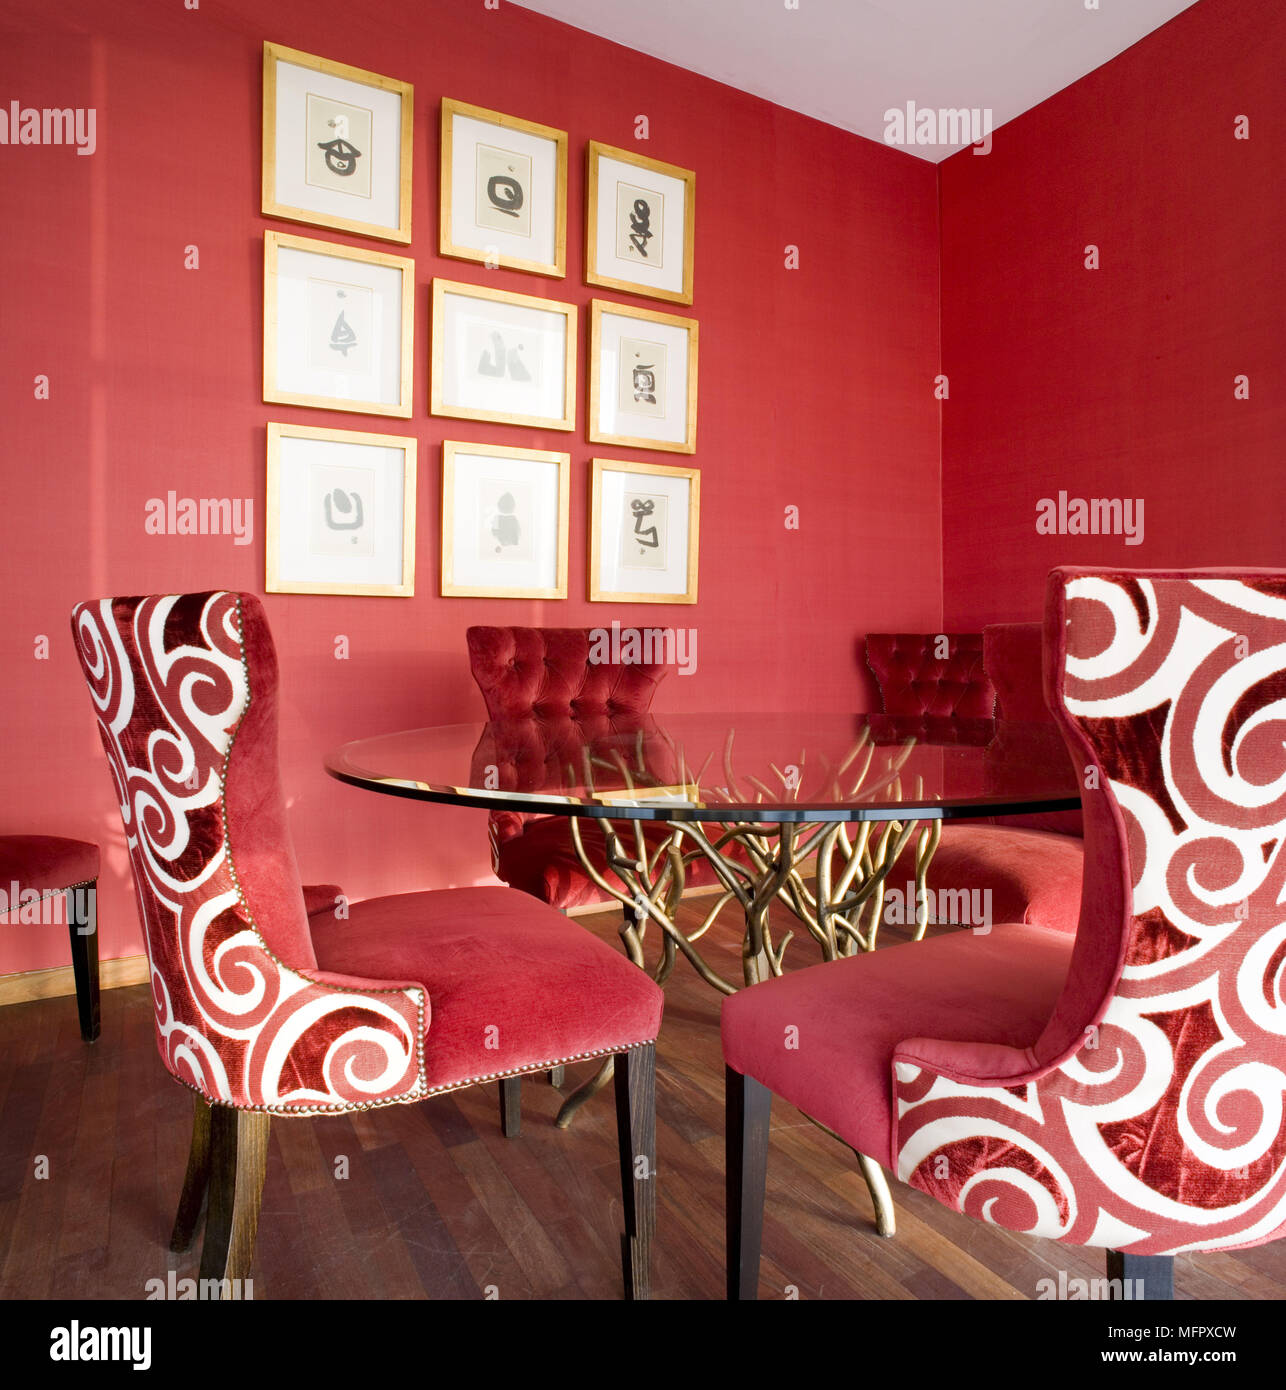 Upholstered chairs with white pattern at glass topped table in modern red dining room Stock Photo